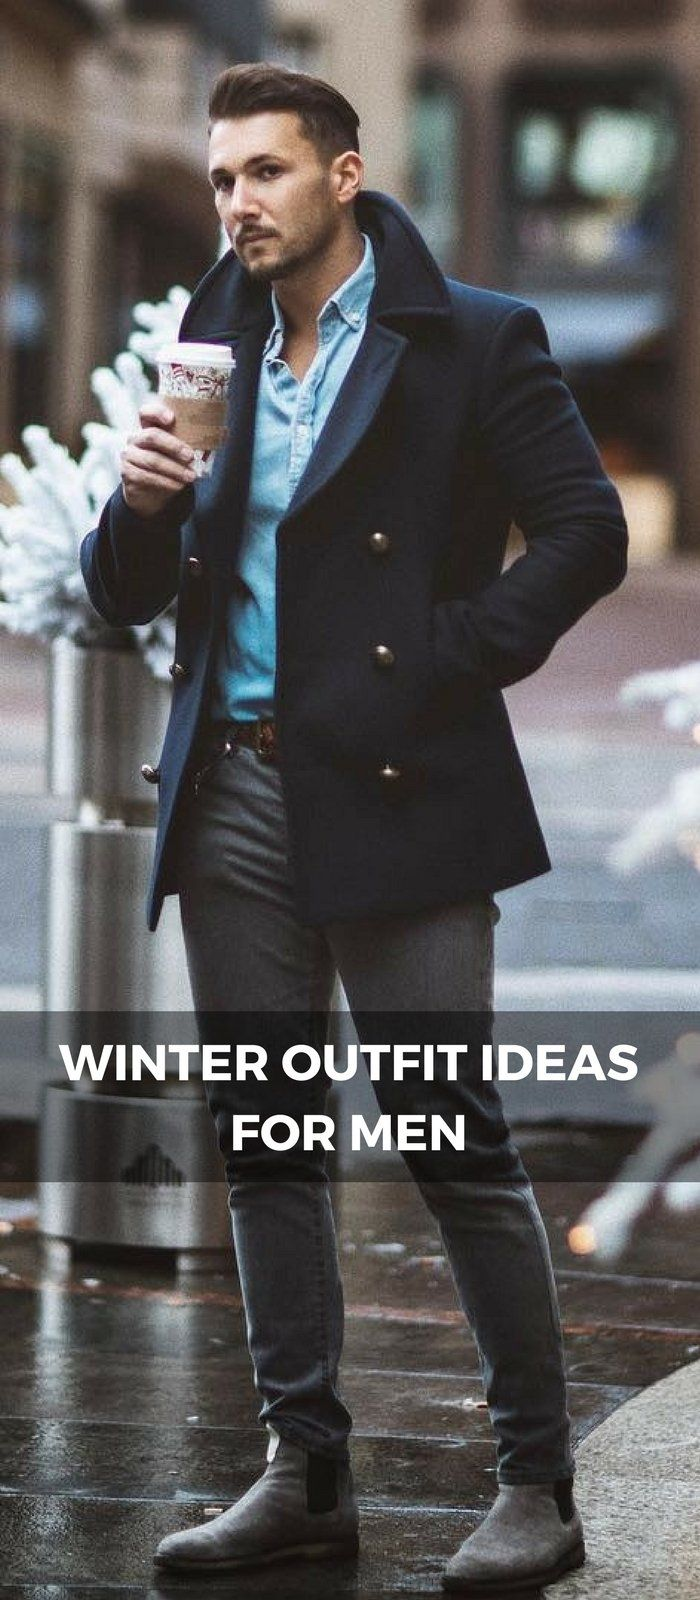 8 Coolest Winter Outfit Ideas For Men in 2019